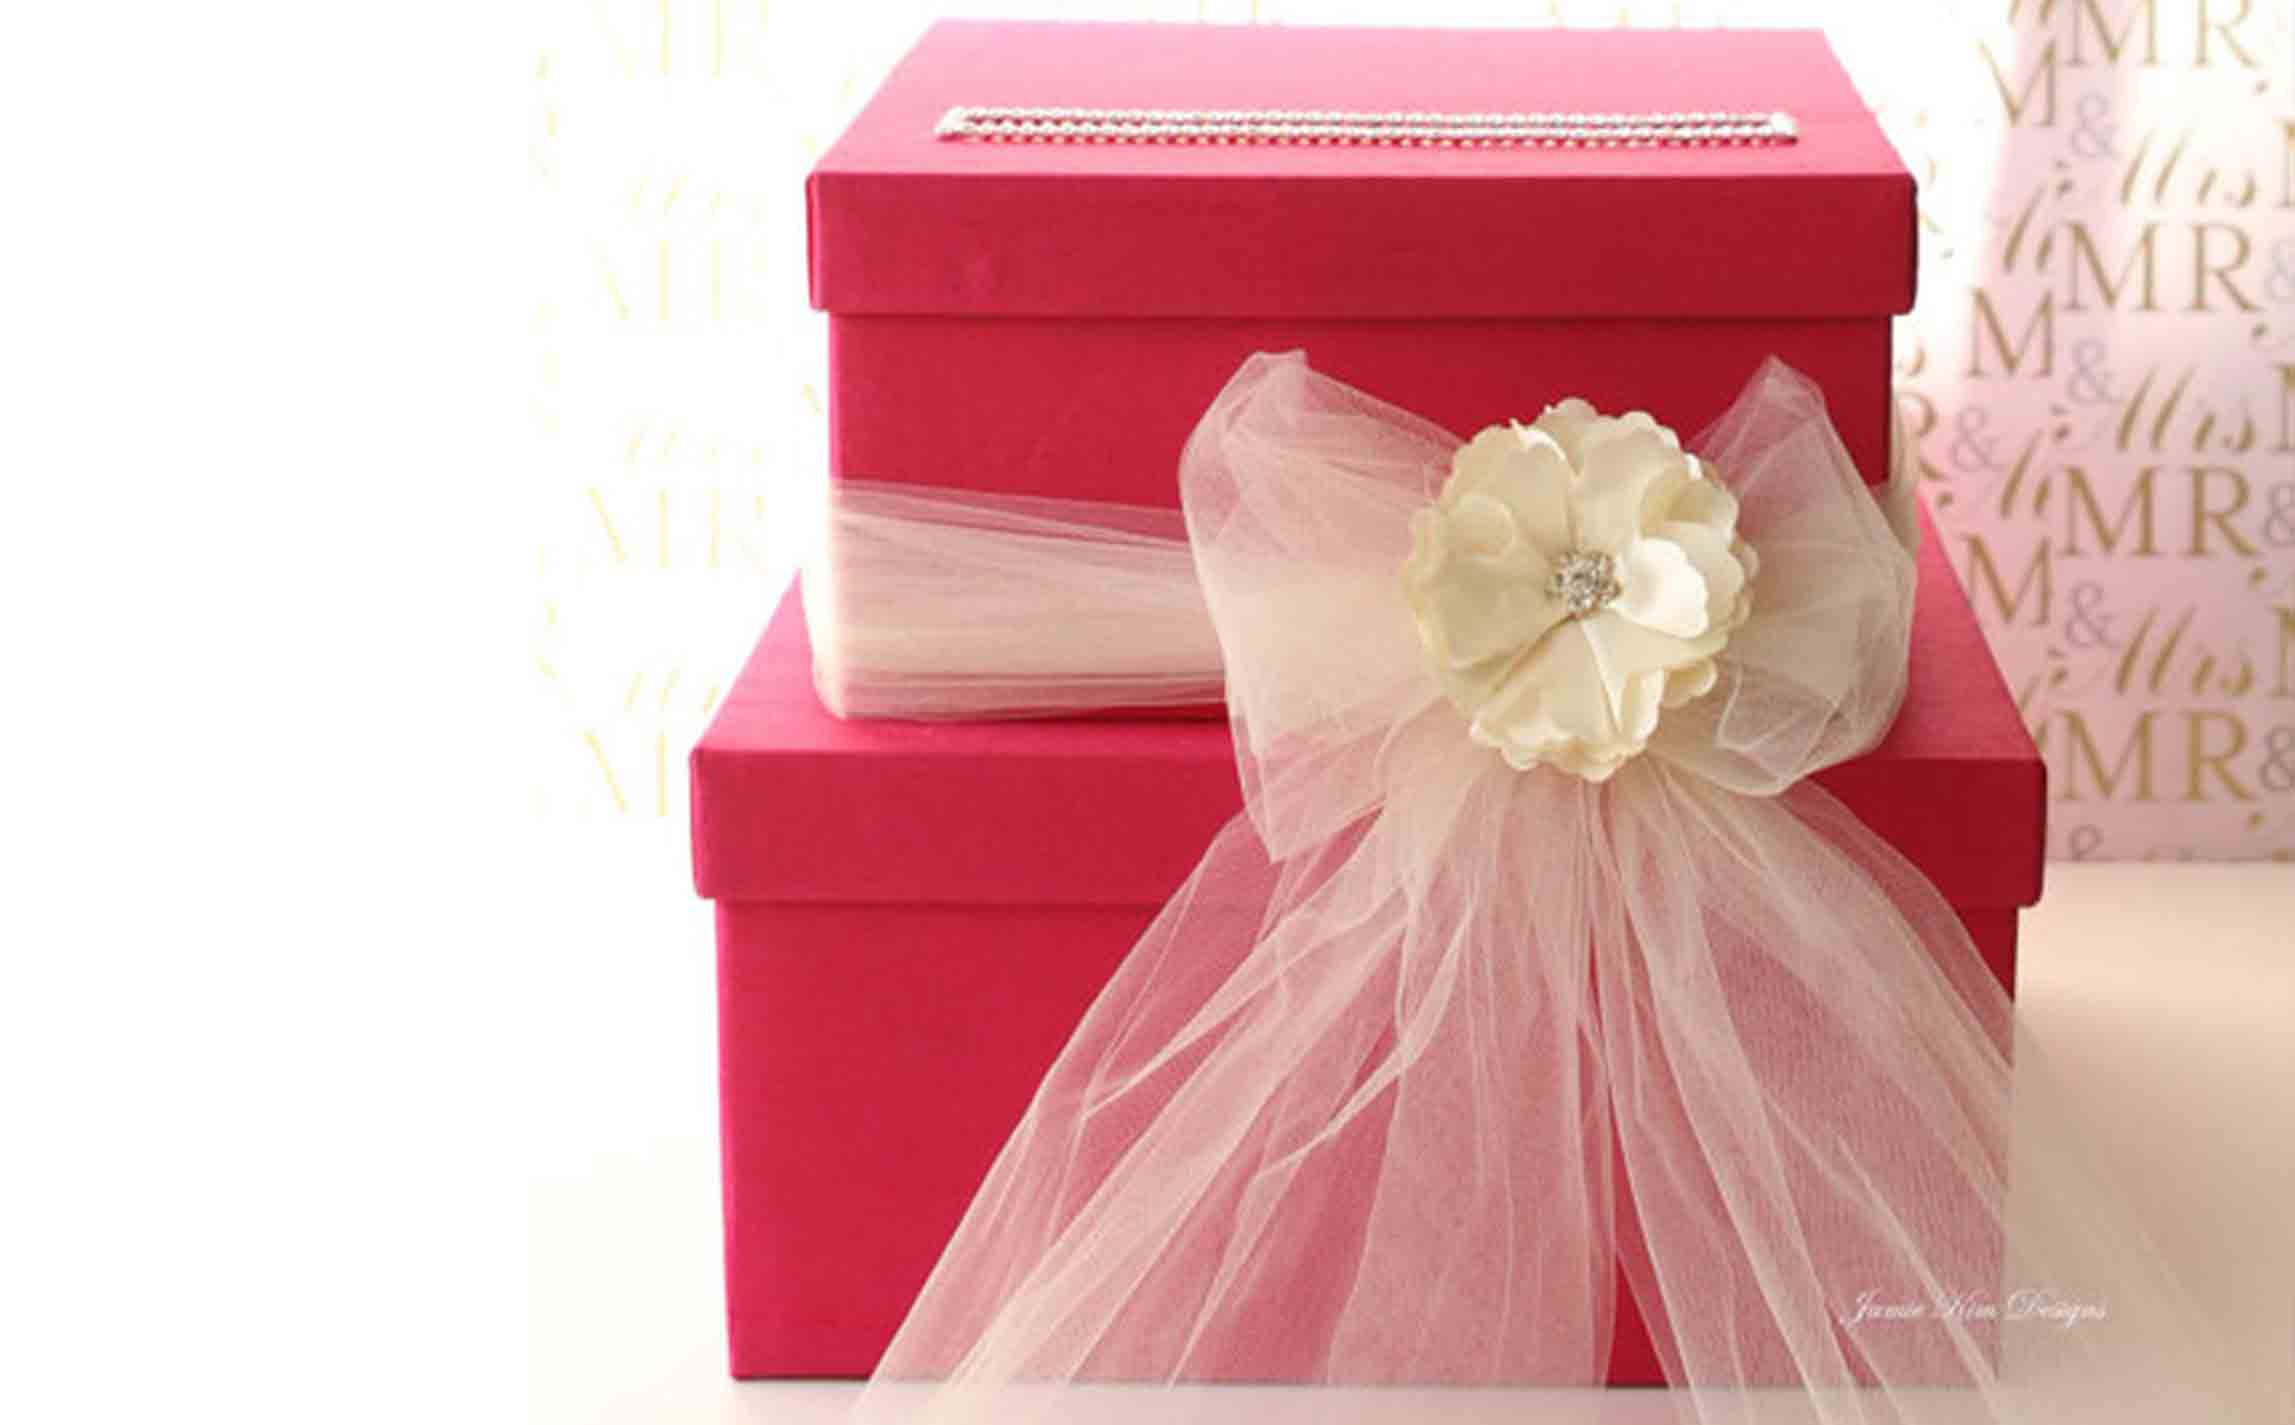 8 Ways to Stop Wedding Gift Cards from Being Stolen | GCG